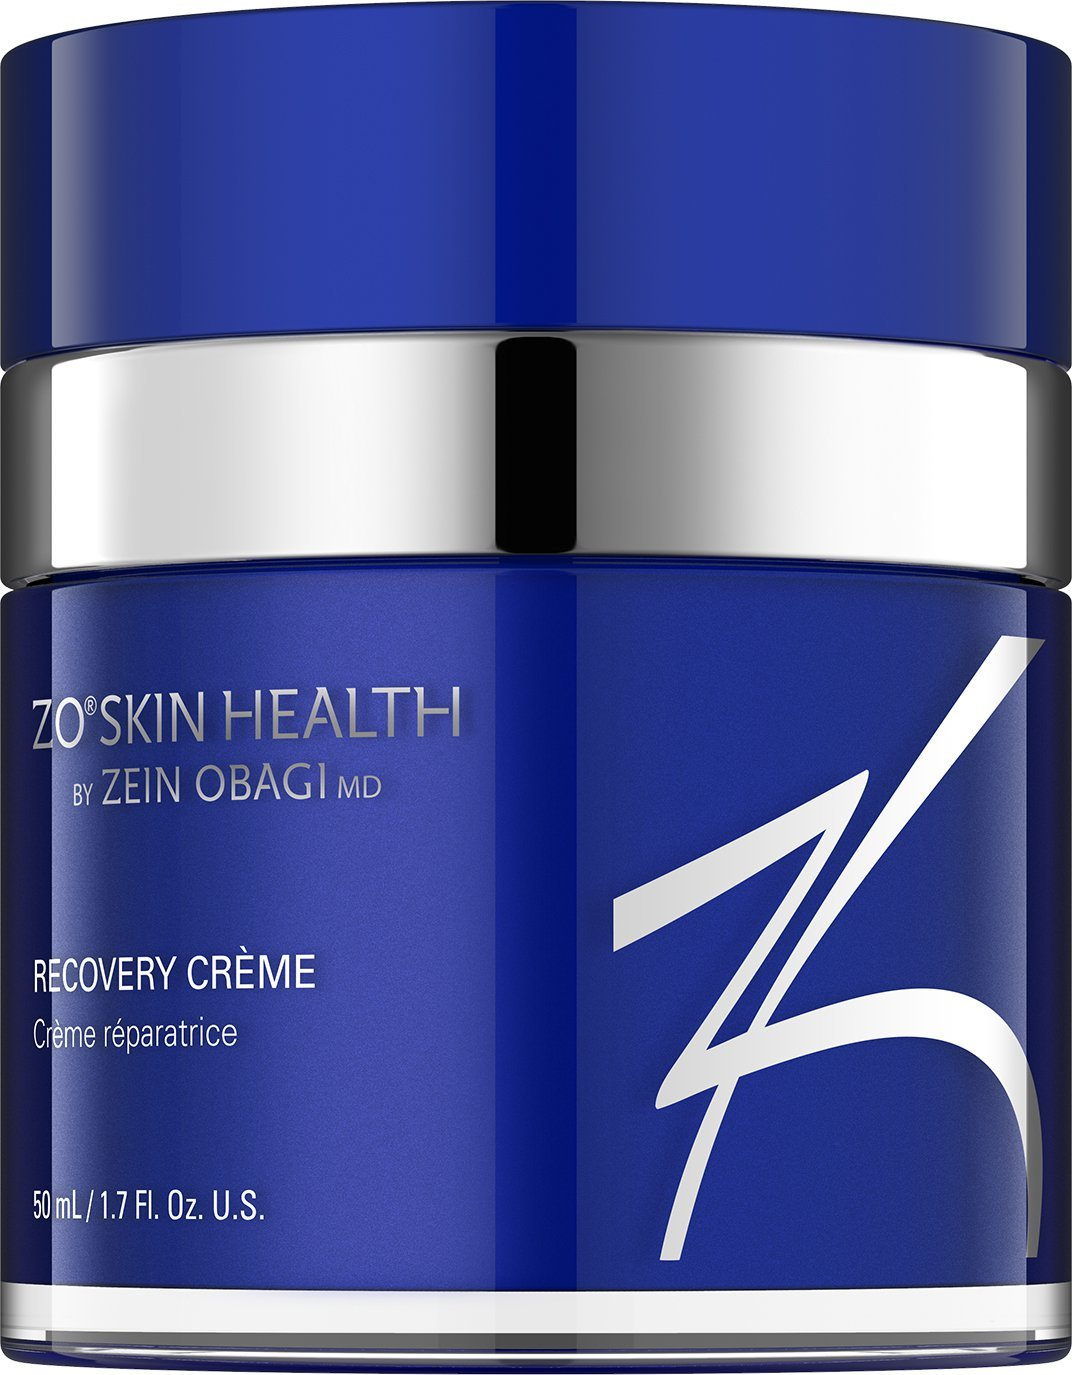 ZO Skin Health Recovery Cream 1.7 oz/50ml formerly called ''ZO Skin Health Ommerse Overnight Recovery Creme 1.7oz/50ml''